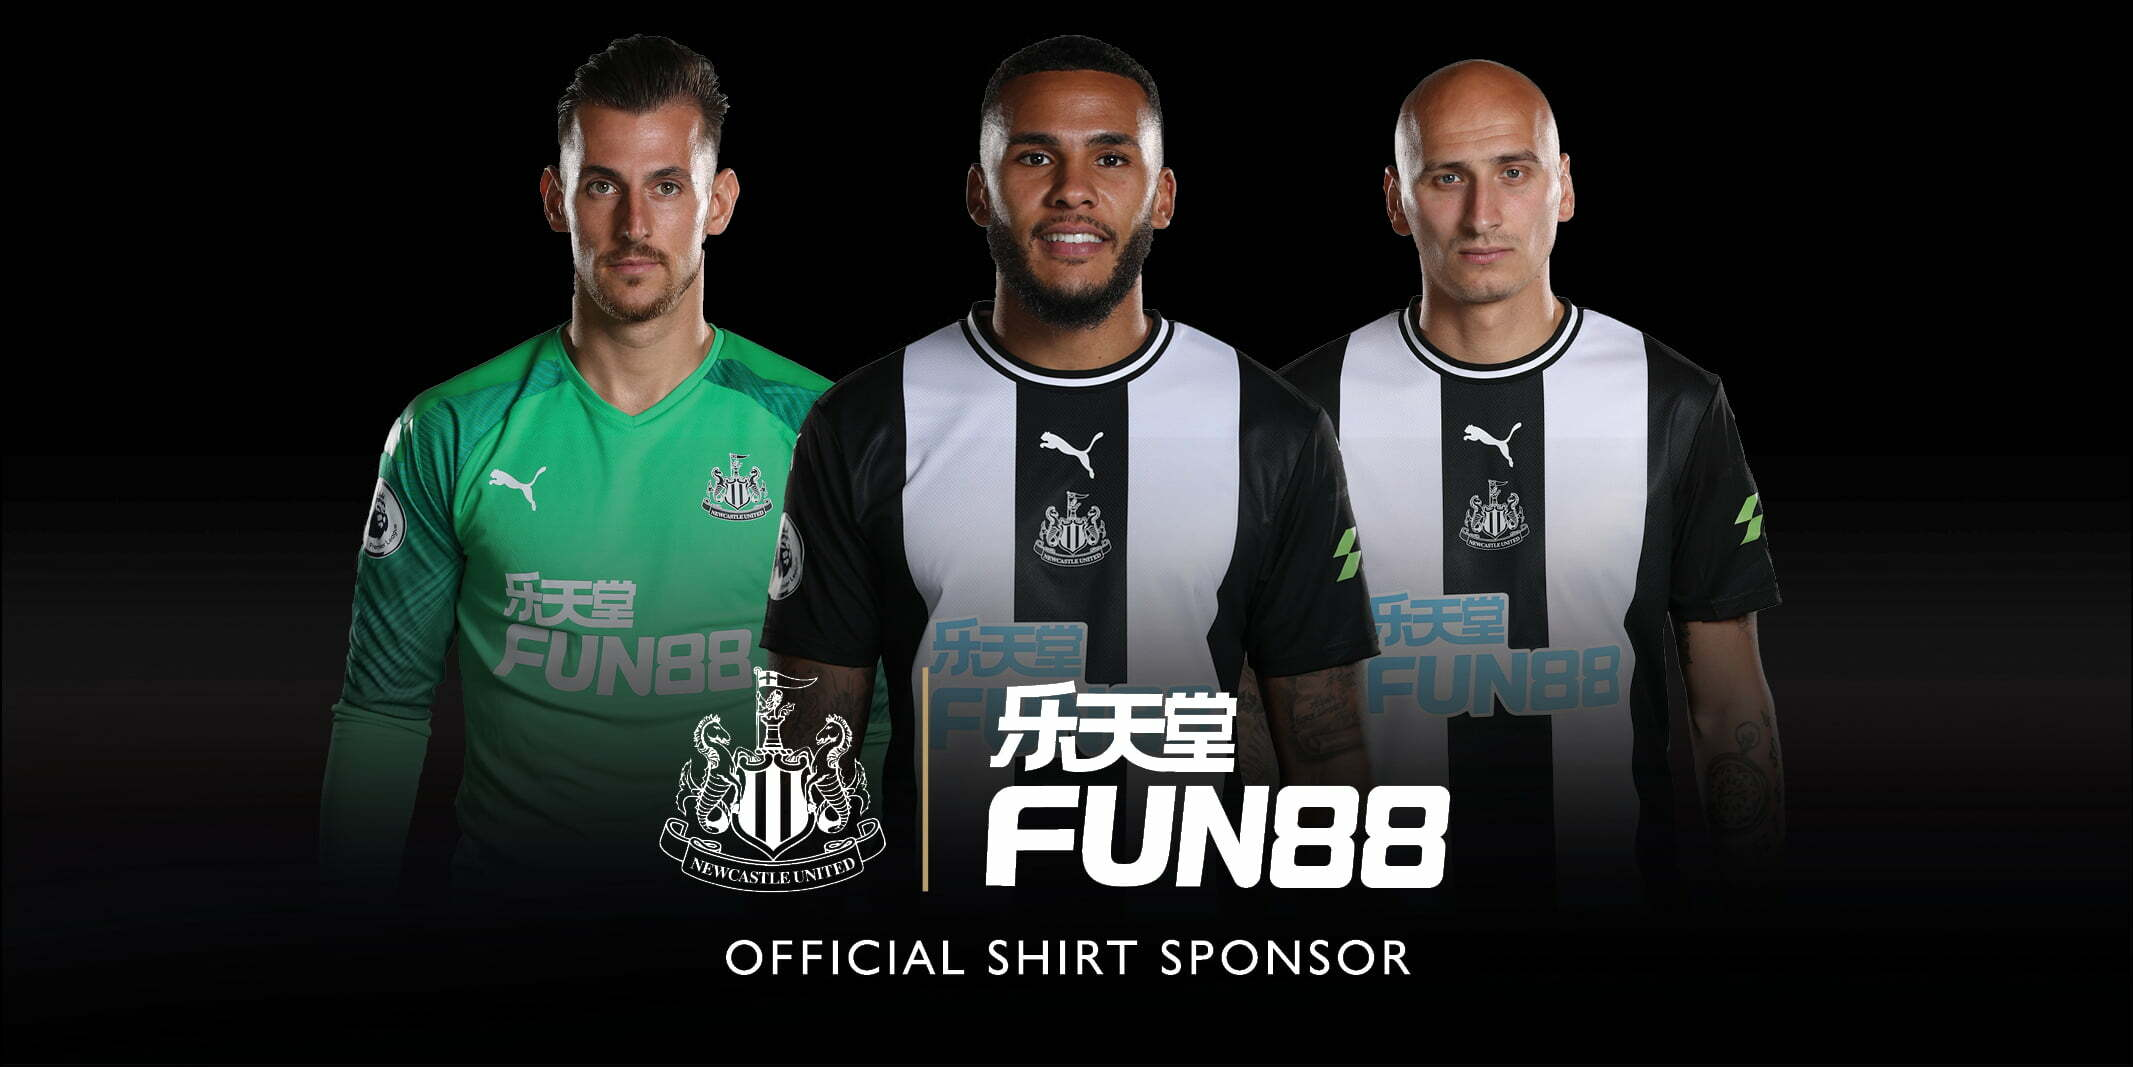 NUFC Extends Fun88 Commercial Partnership